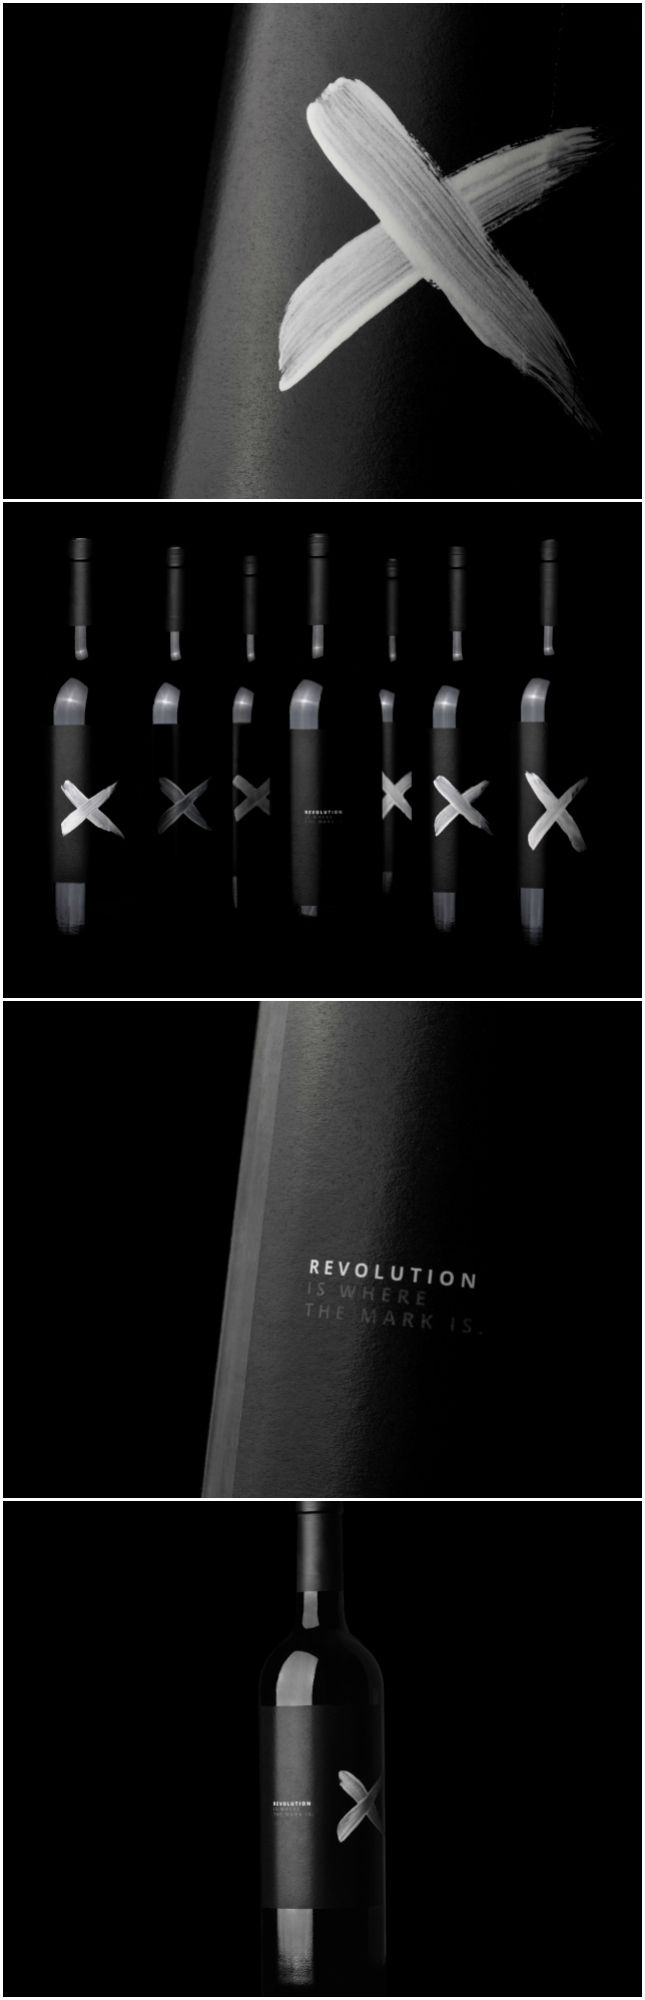 Argentinian 200 Hand Made Wine Label Designs Design Agency:Red Box Mendoza Brand / Project Name:Revolution is where the mark is Location:Argentina Category: #wine #drinks  World Brand & Packaging Design Society